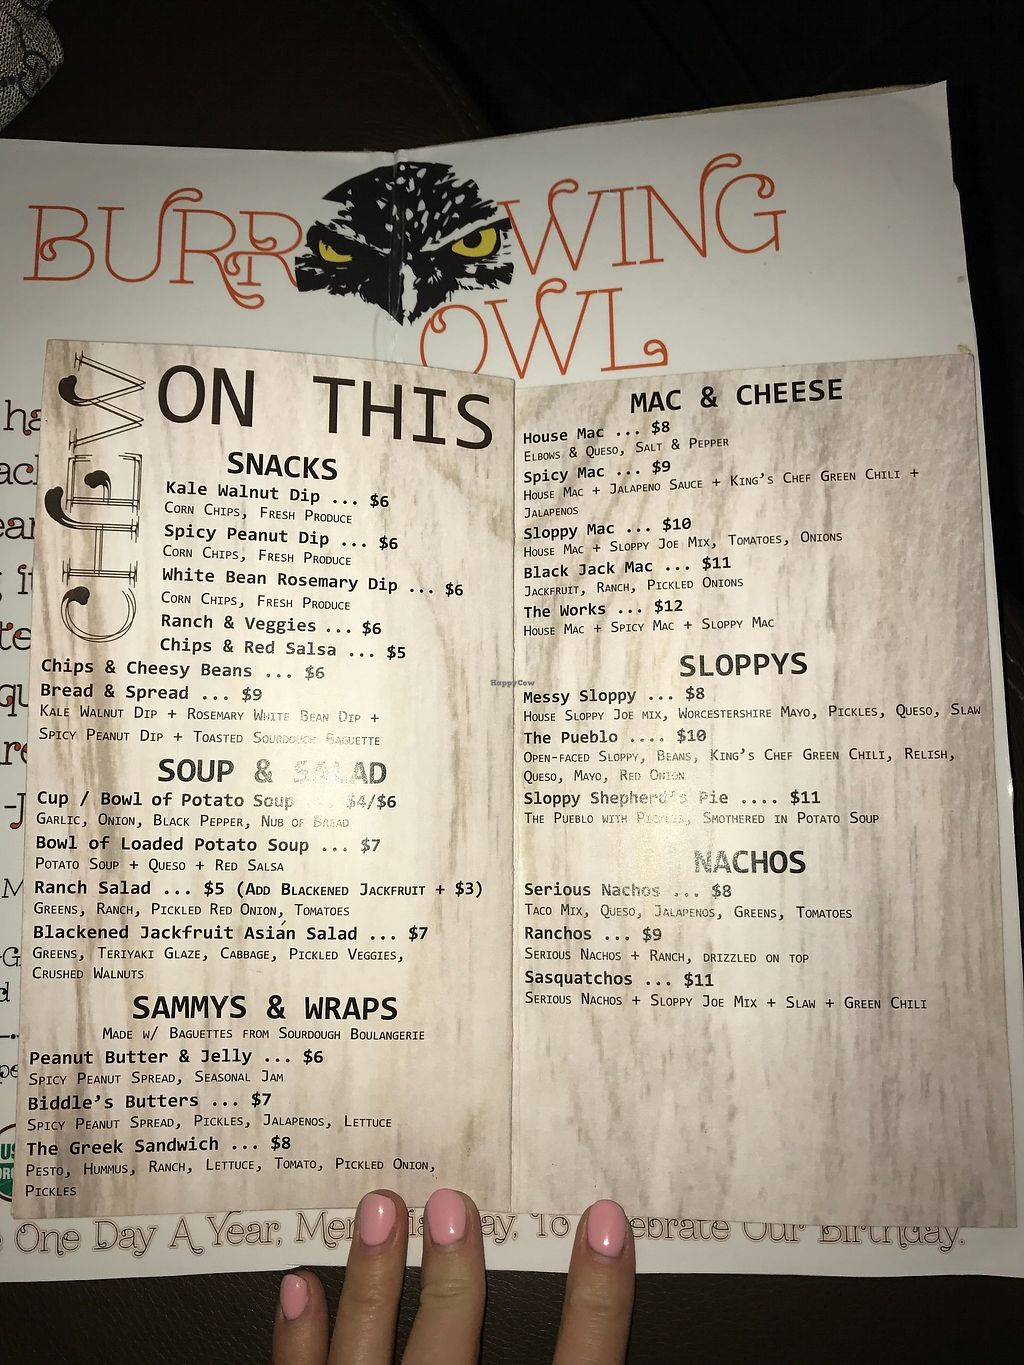 """Photo of The Burrowing Owl Lounge  by <a href=""""/members/profile/Remerson13"""">Remerson13</a> <br/>Menu <br/> July 7, 2017  - <a href='/contact/abuse/image/59373/277522'>Report</a>"""